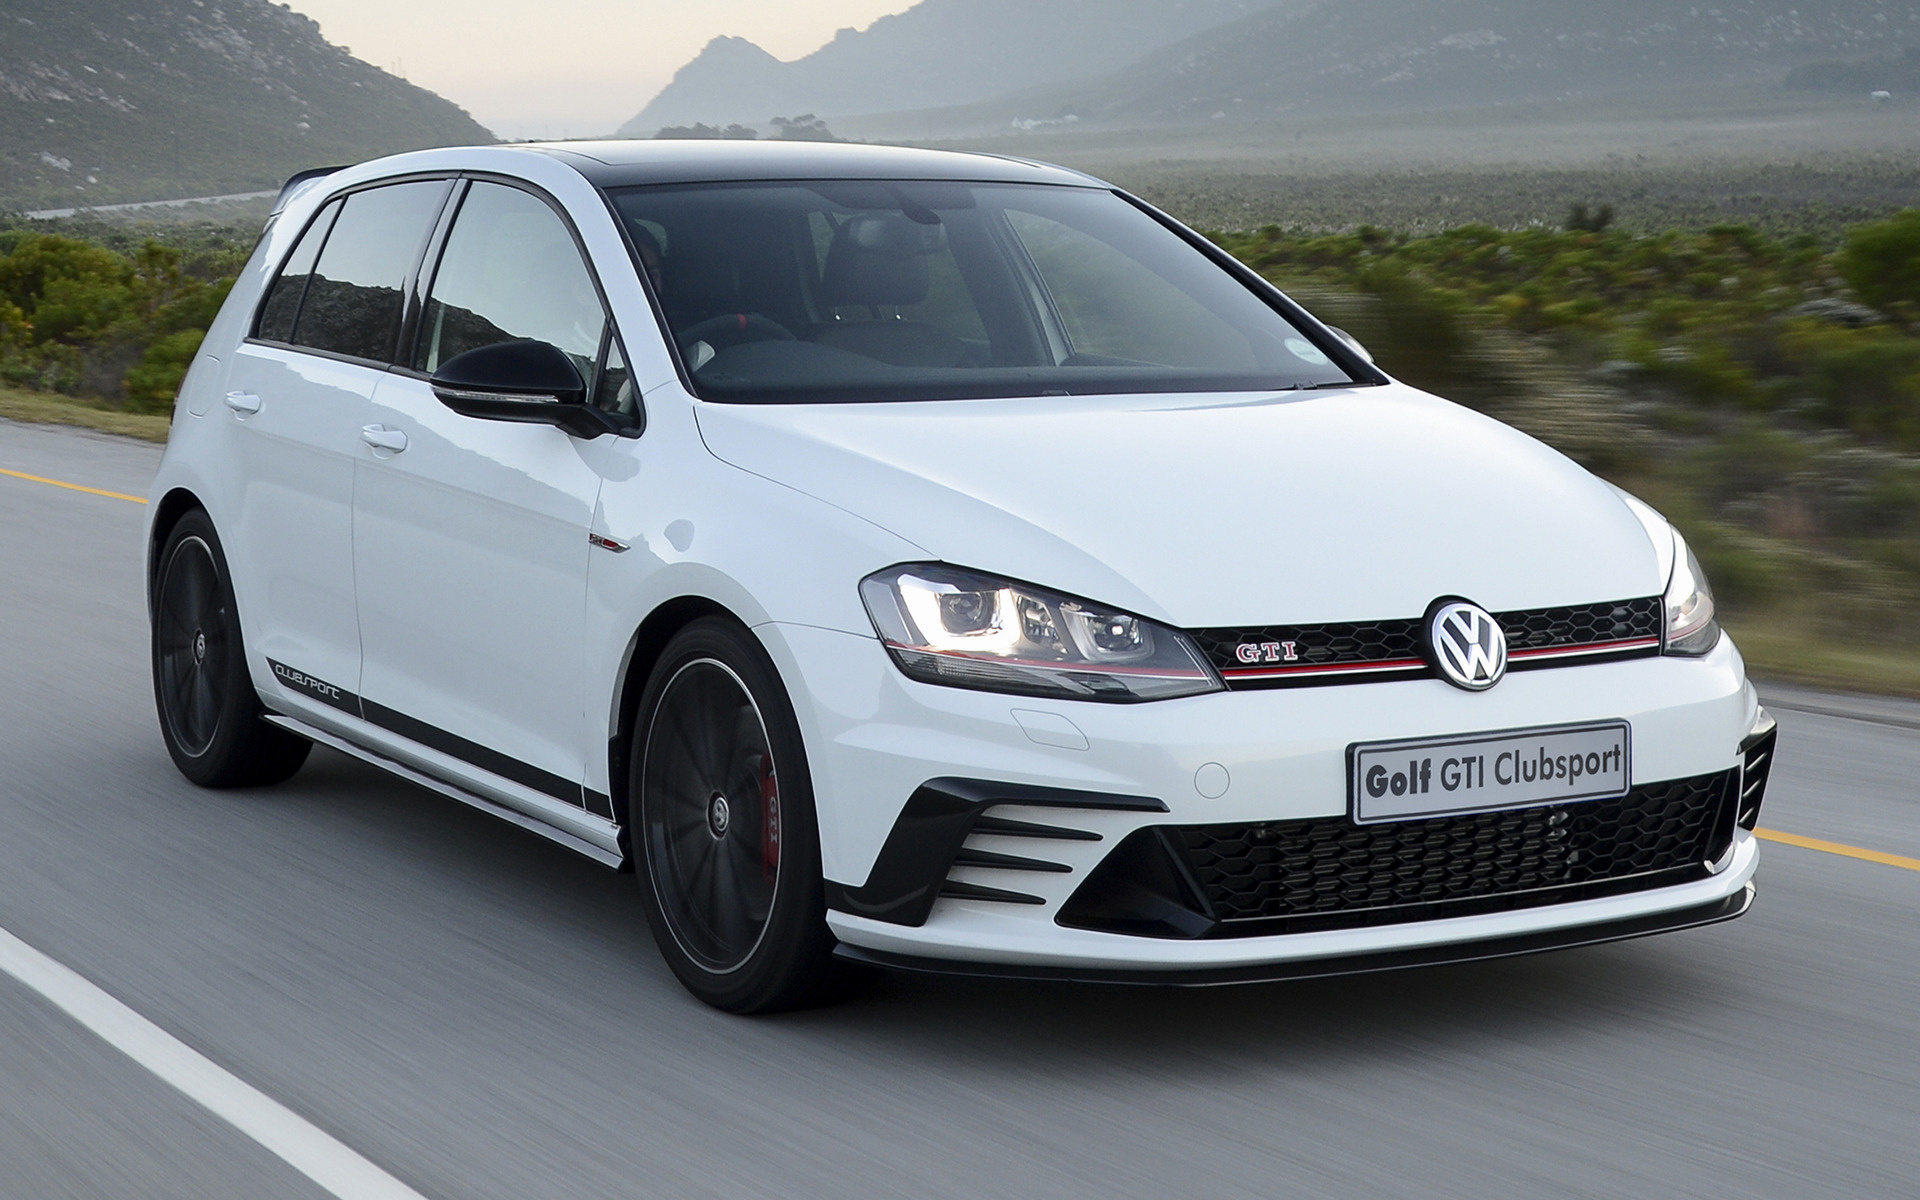 2016 volkswagen golf gti clubsport 5 door za. Black Bedroom Furniture Sets. Home Design Ideas